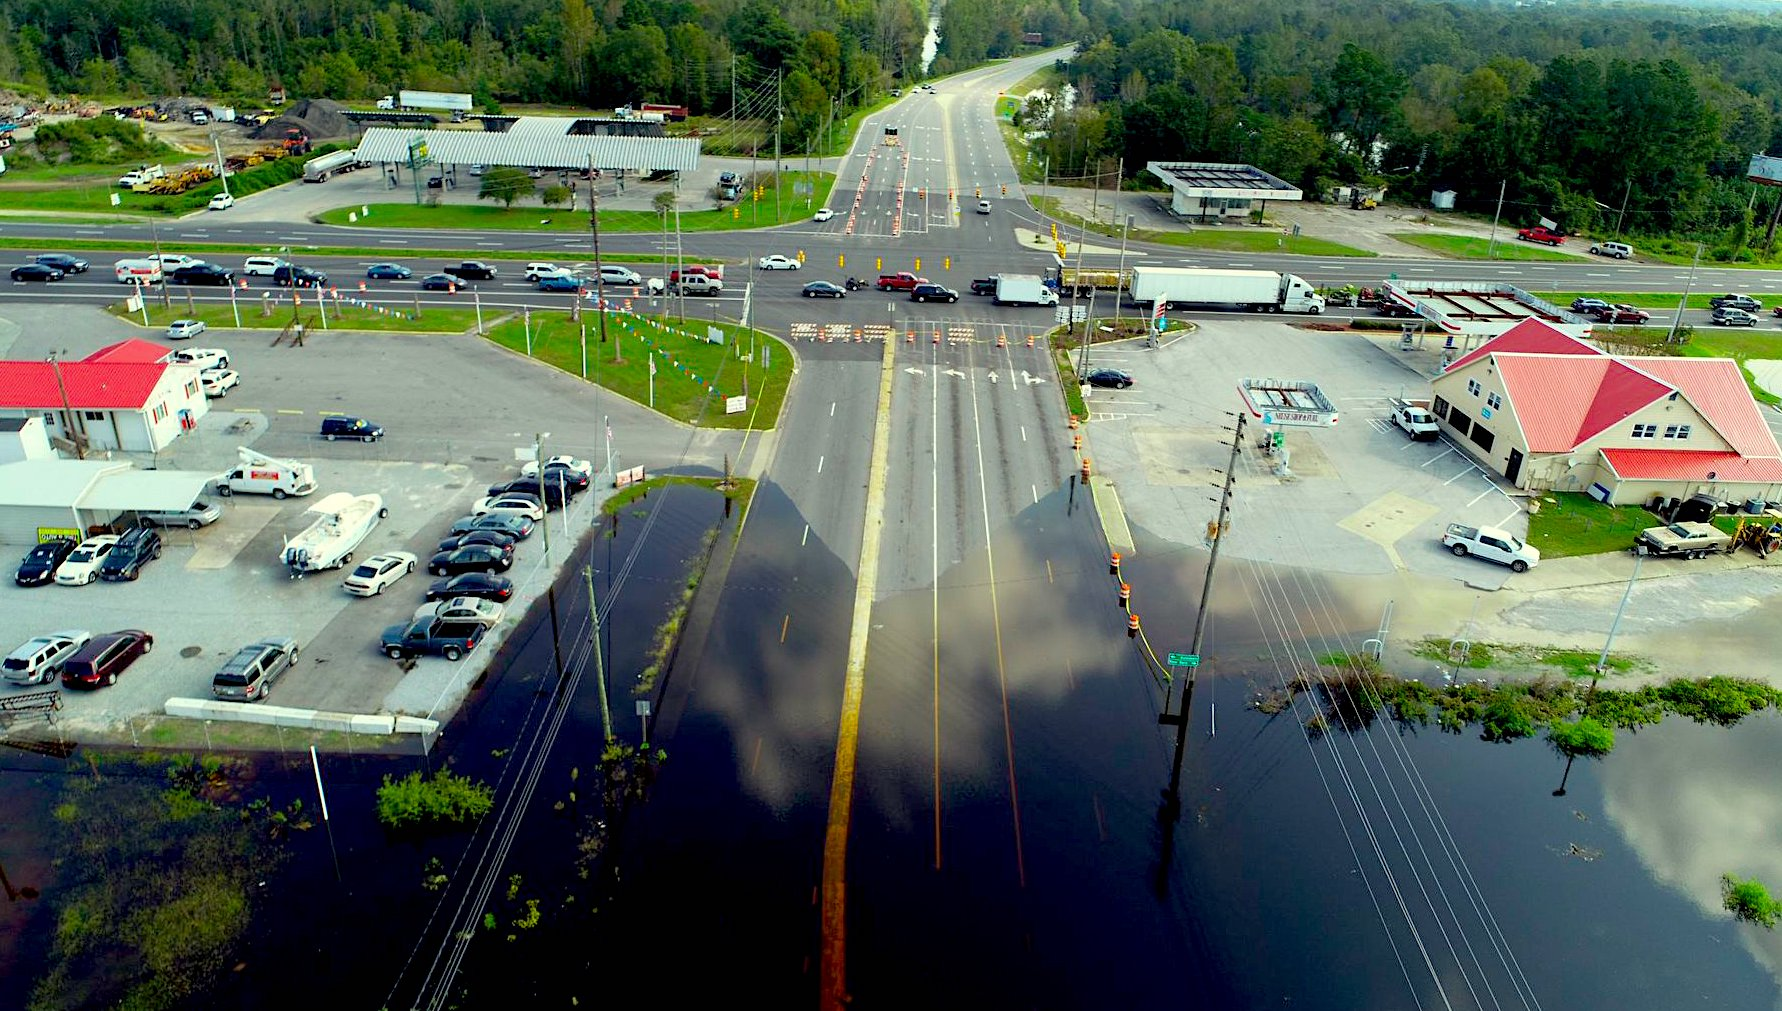 Flooding from Hurricane Florence closed a four-mile section of U.S. 70 in Kinston, N.C., the author's hometown. Credit: NCDOT